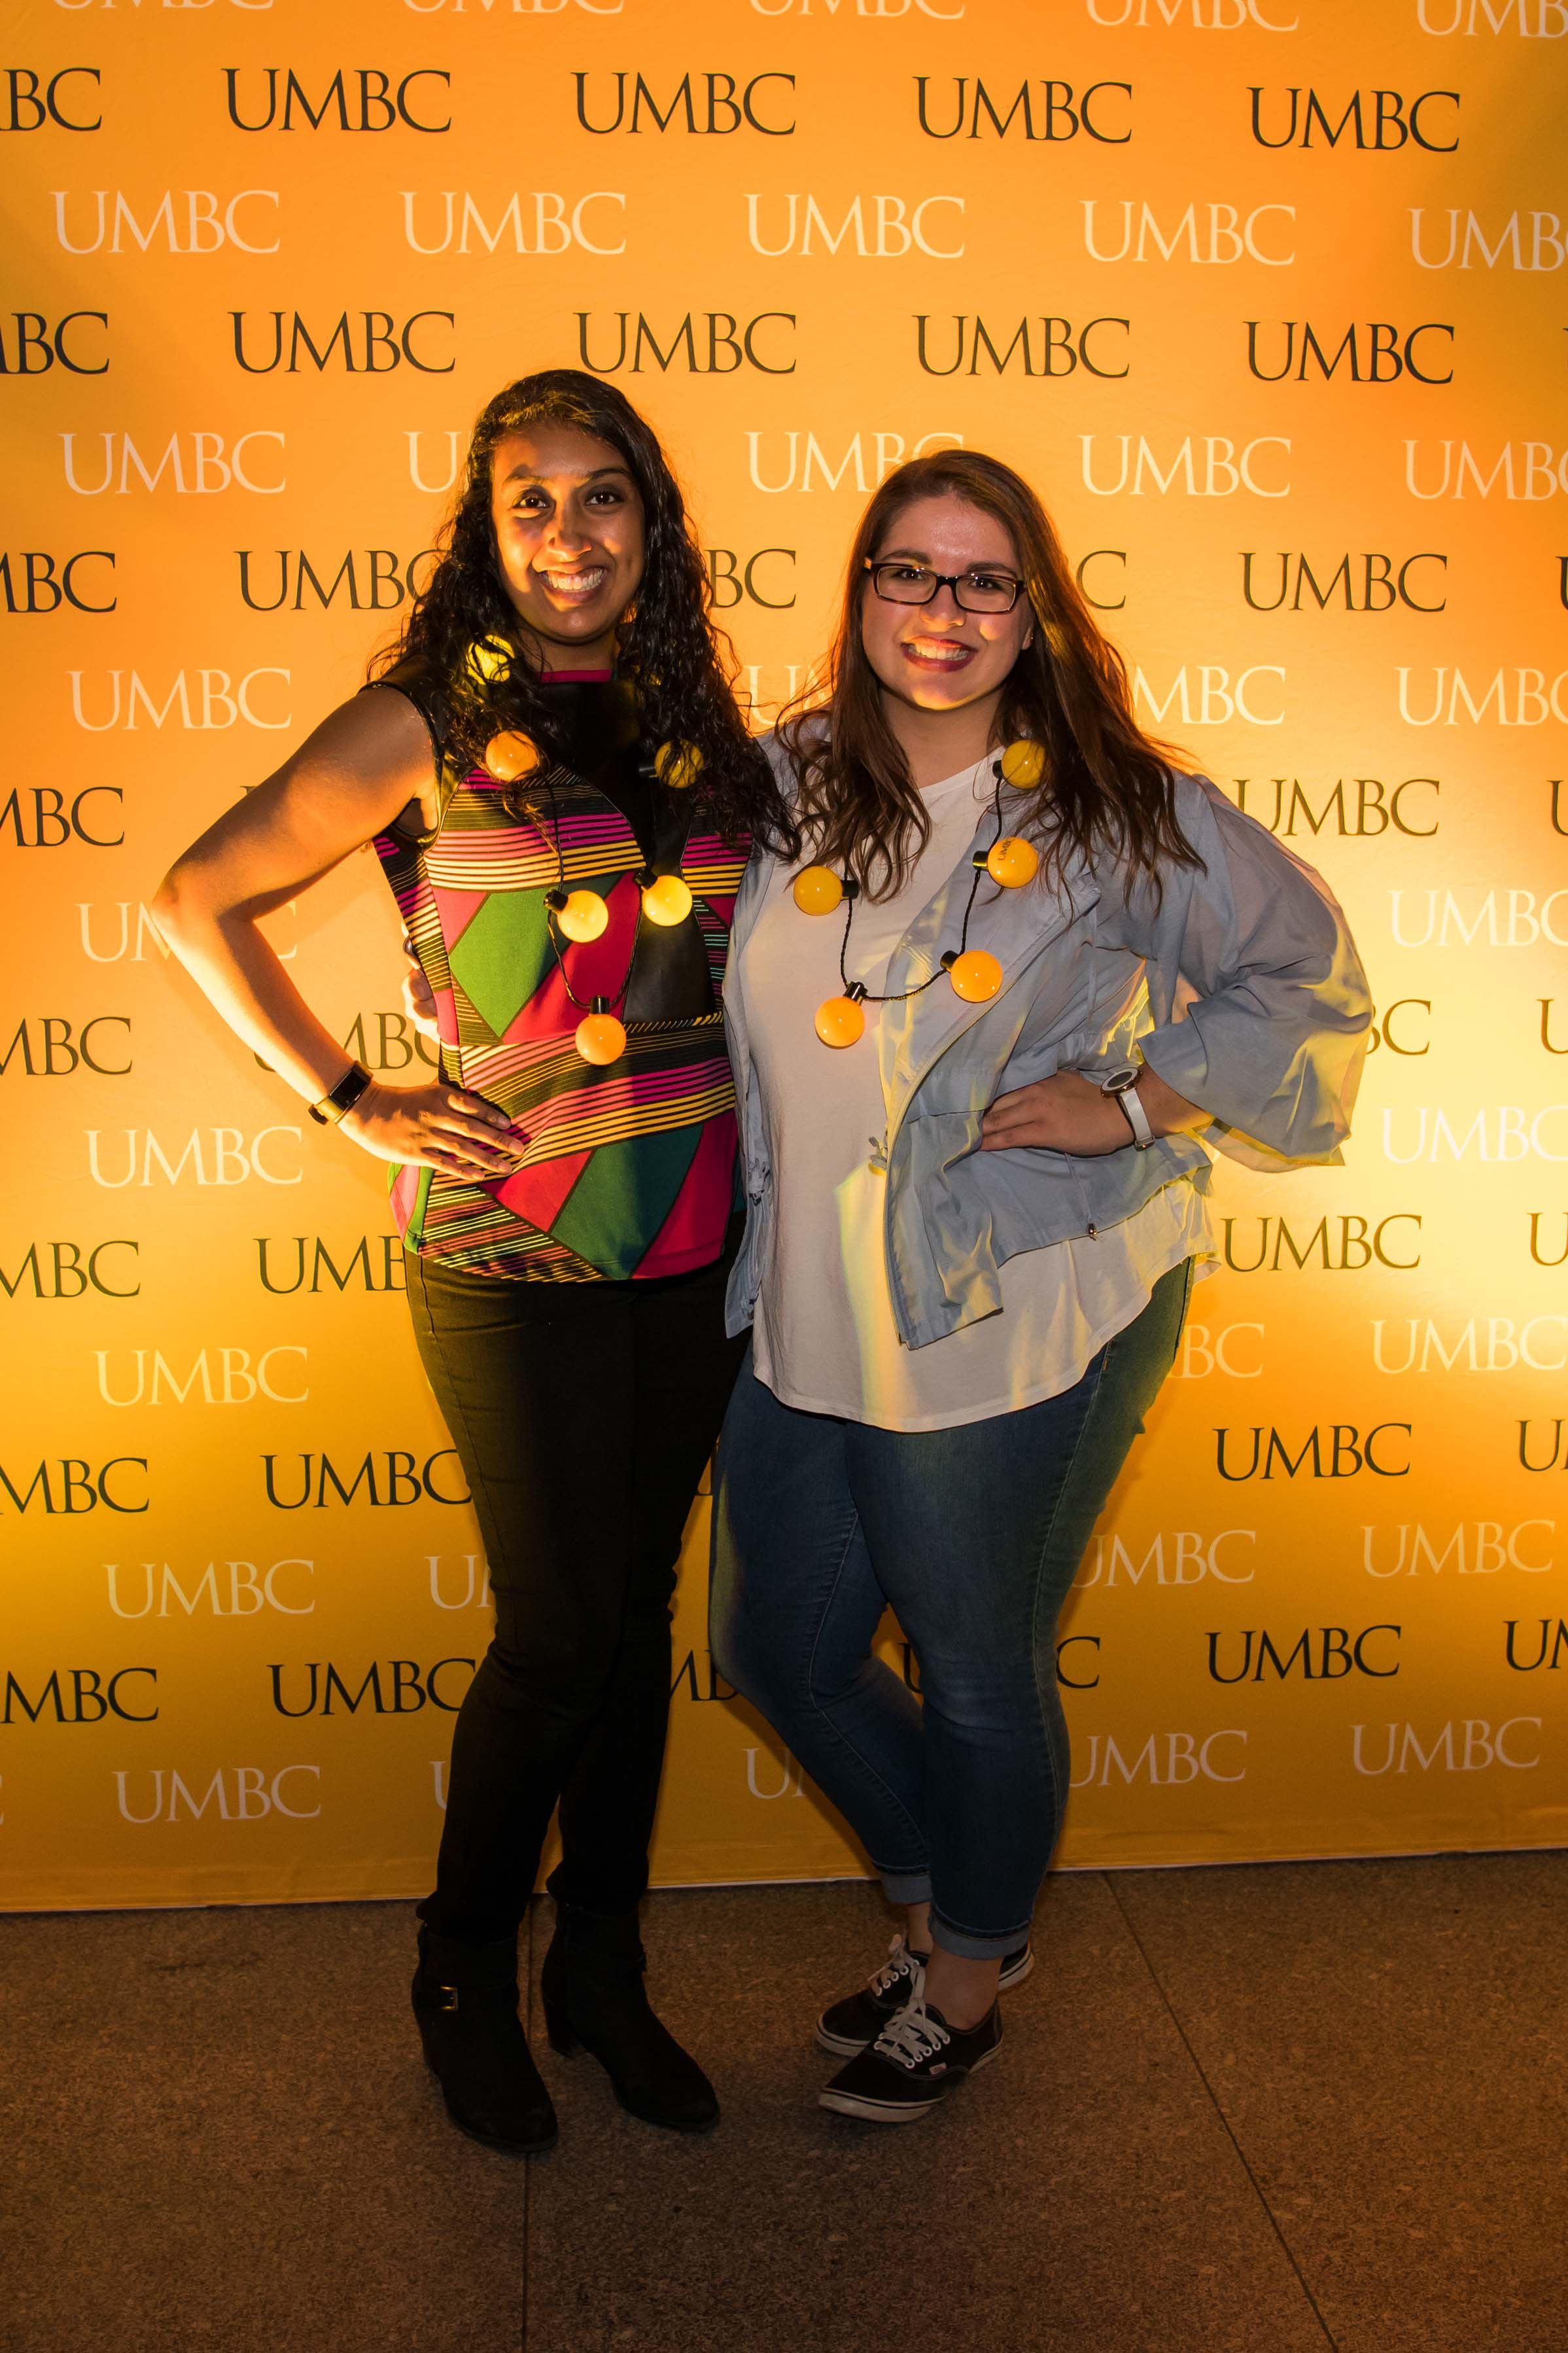 Two women with their lightbulb necklaces pose in front of UMBC wall at alumni reception